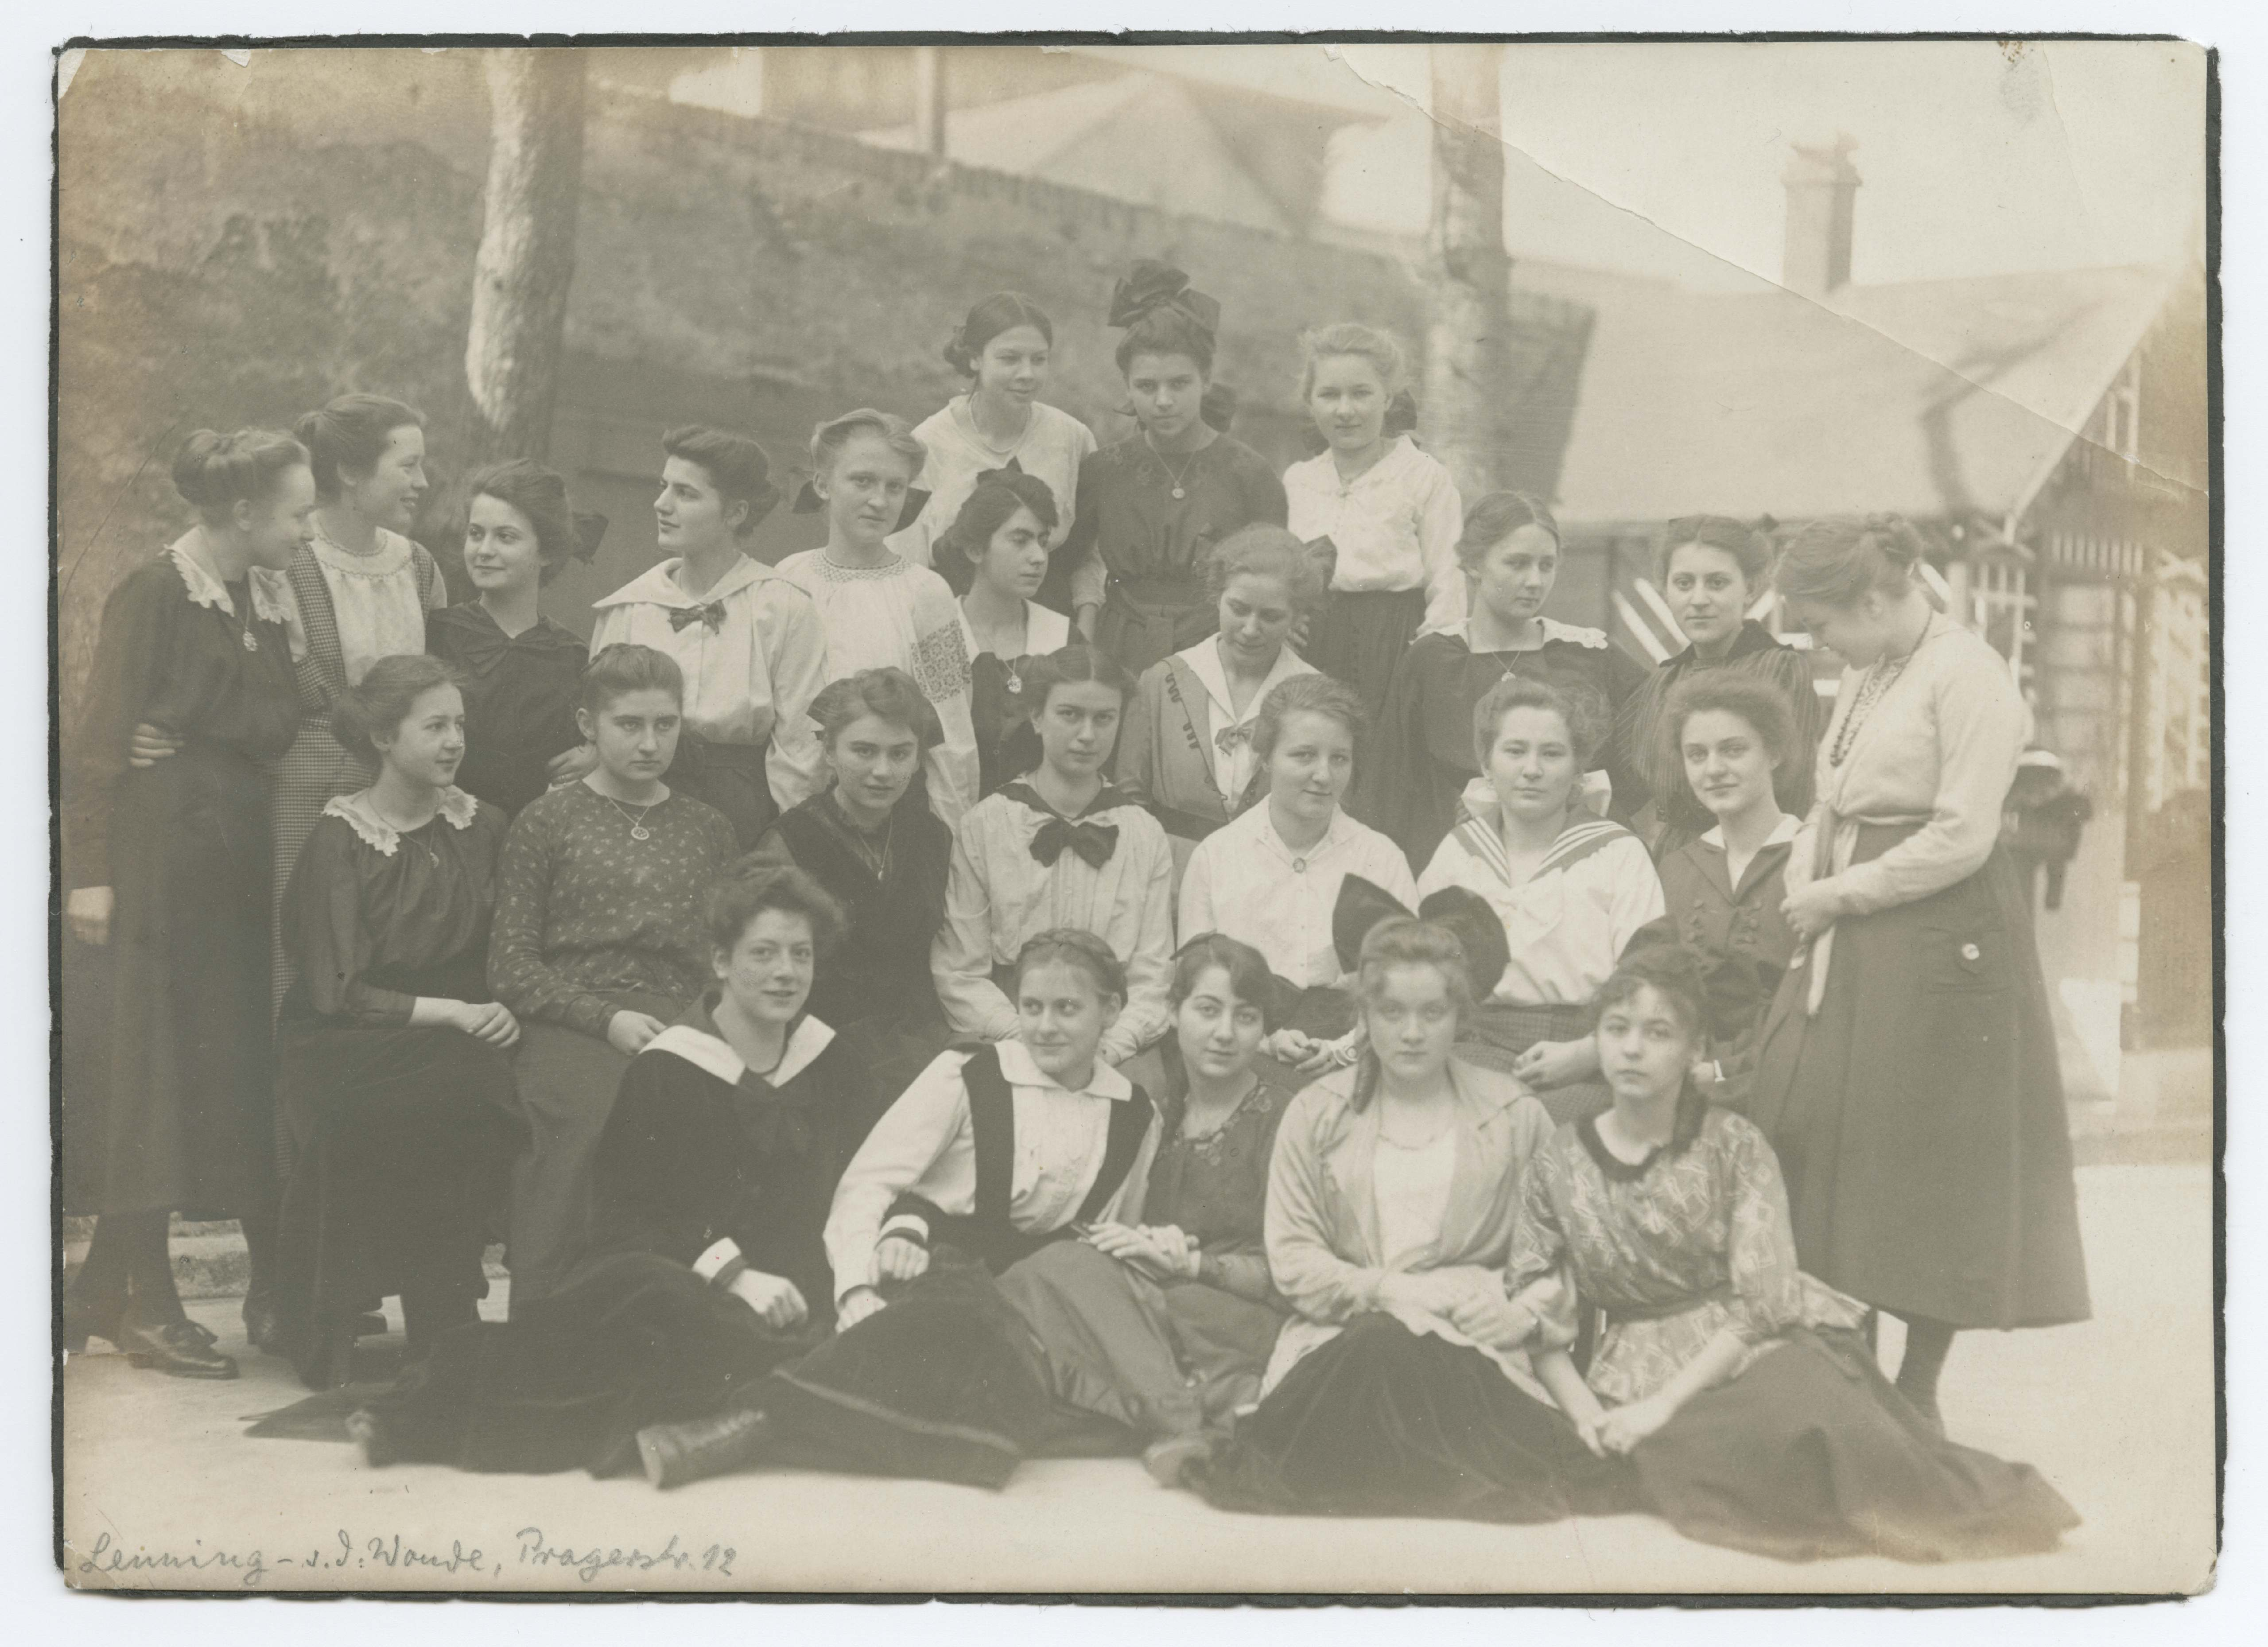 Class photo from the Viktoria Luisen School with Marlene Dietrich, Berlin-Wilmersdorf, 1918